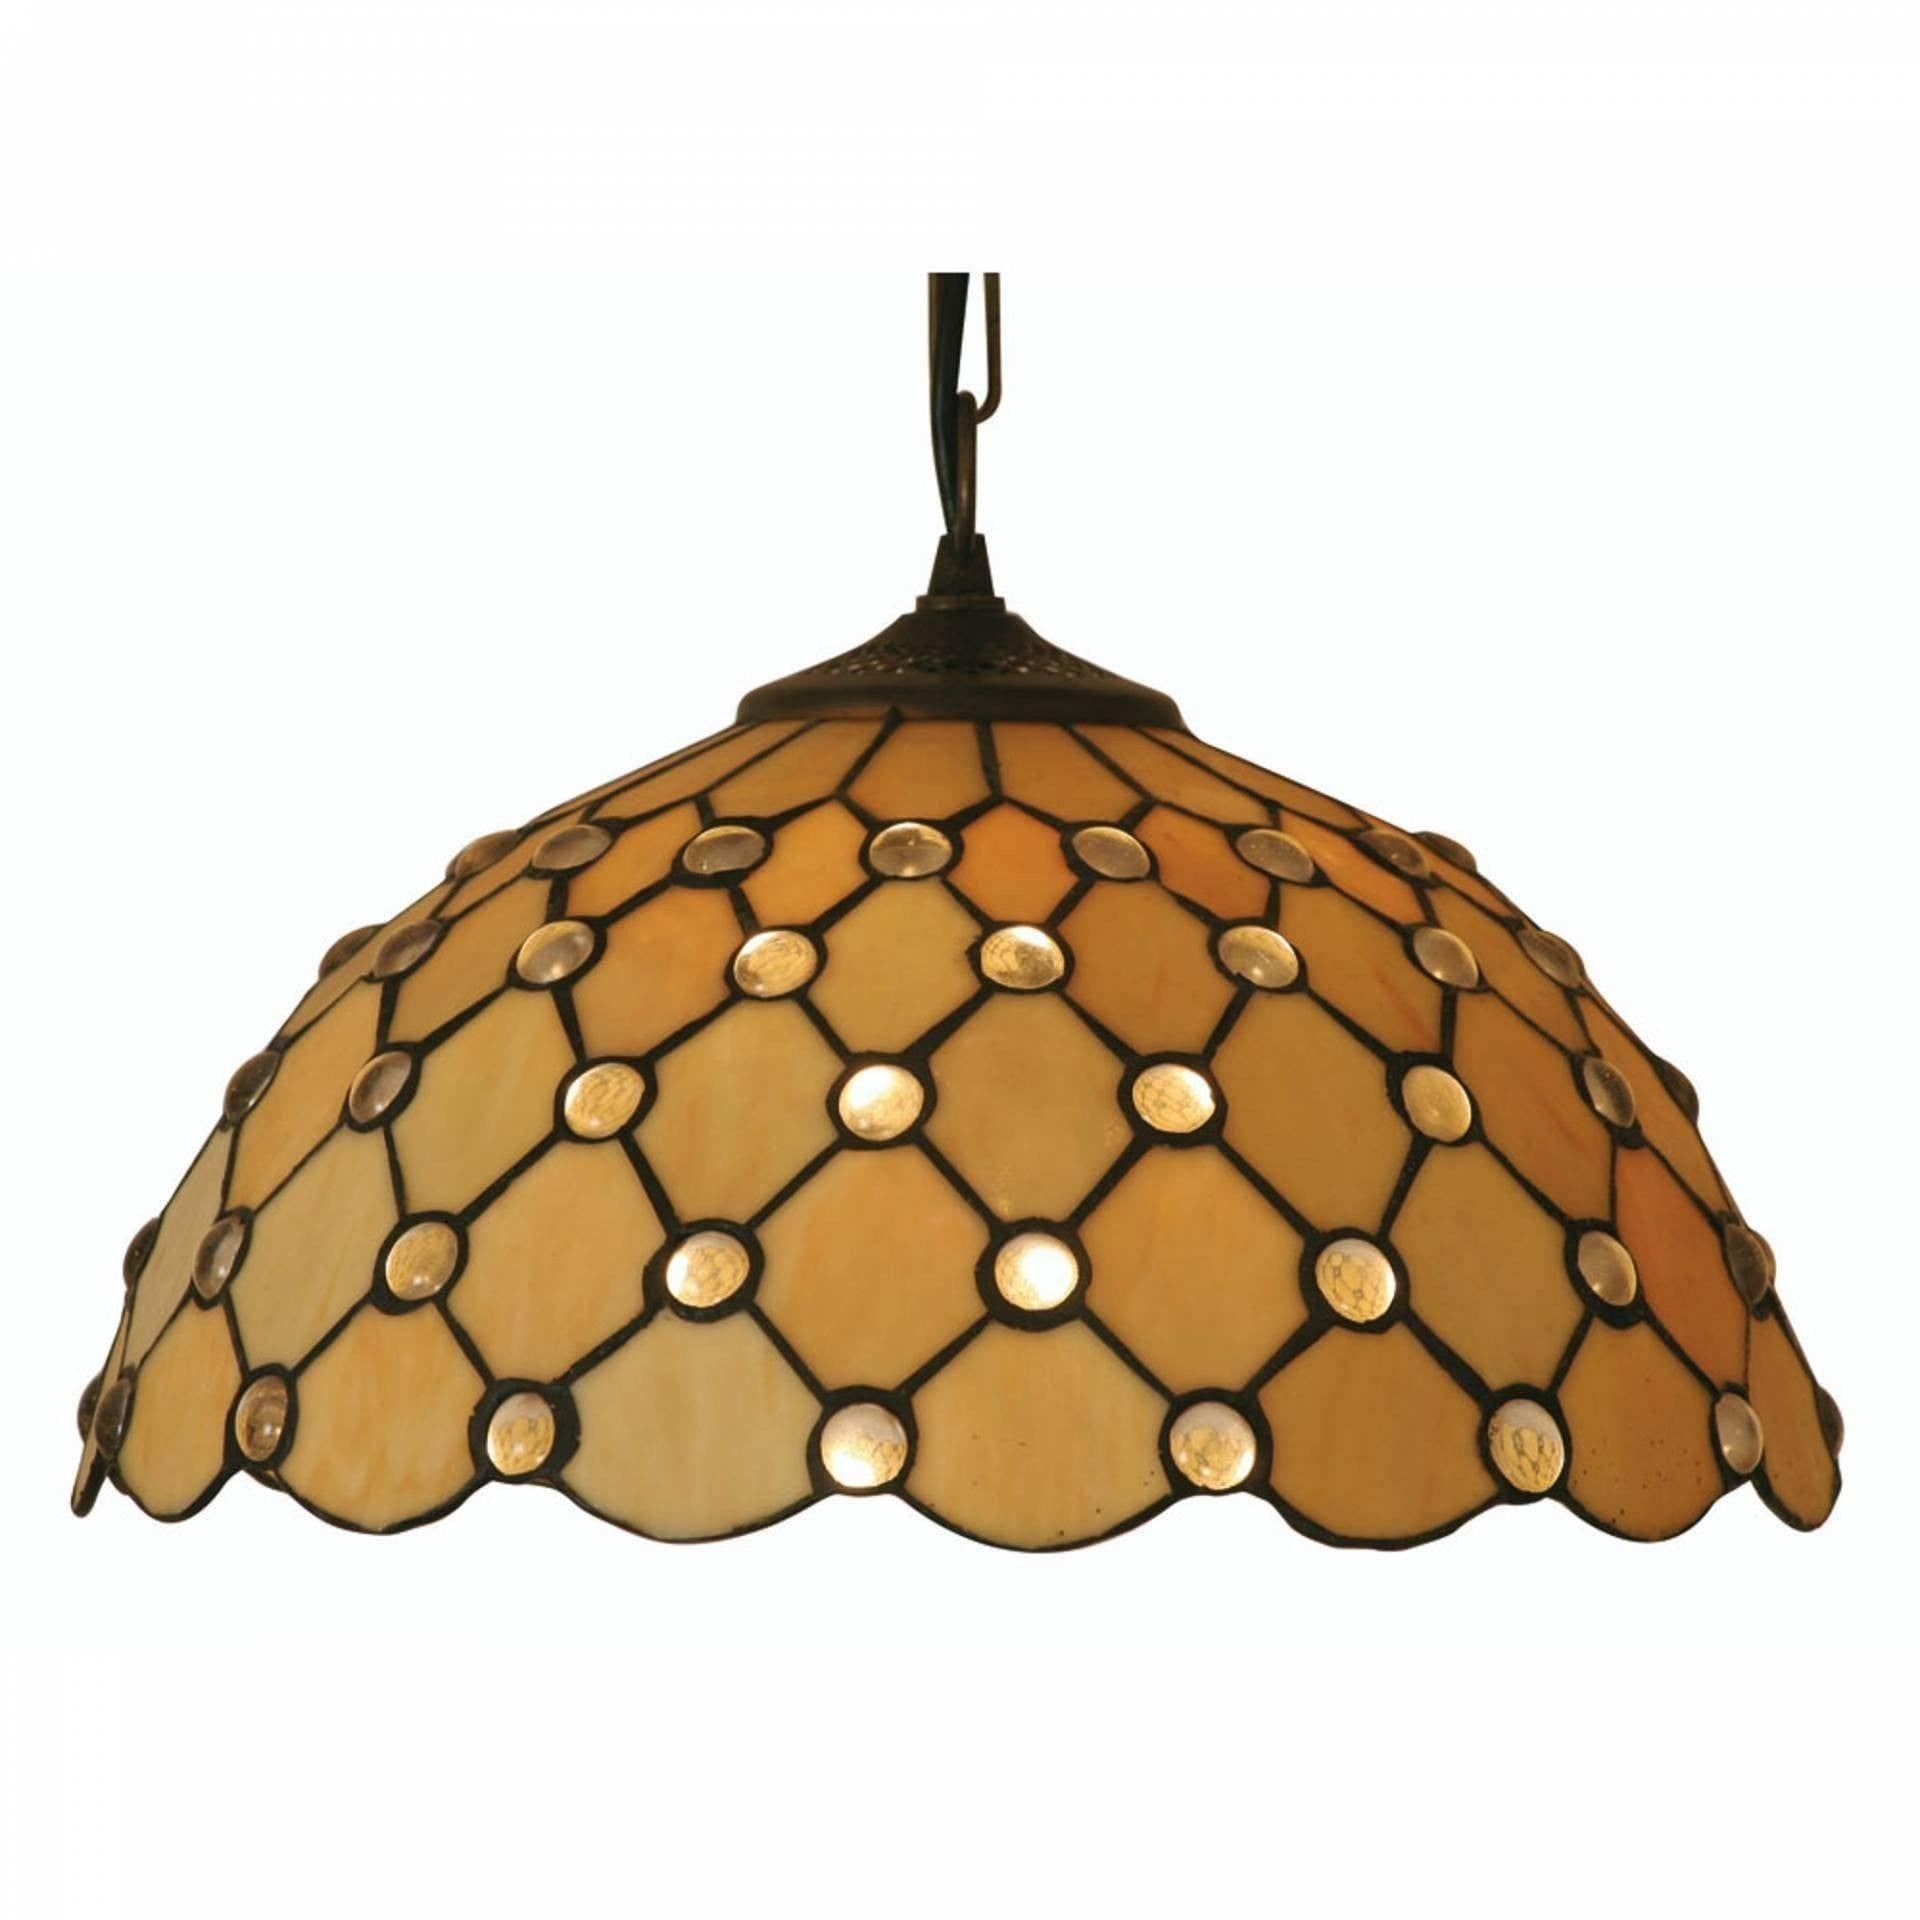 Tiffany Ceiling Pendant Lights - Oaks Tiffany Jewel Pendant Light,Adjustable Chain,Single Bulb Fitting OT 1562/14P